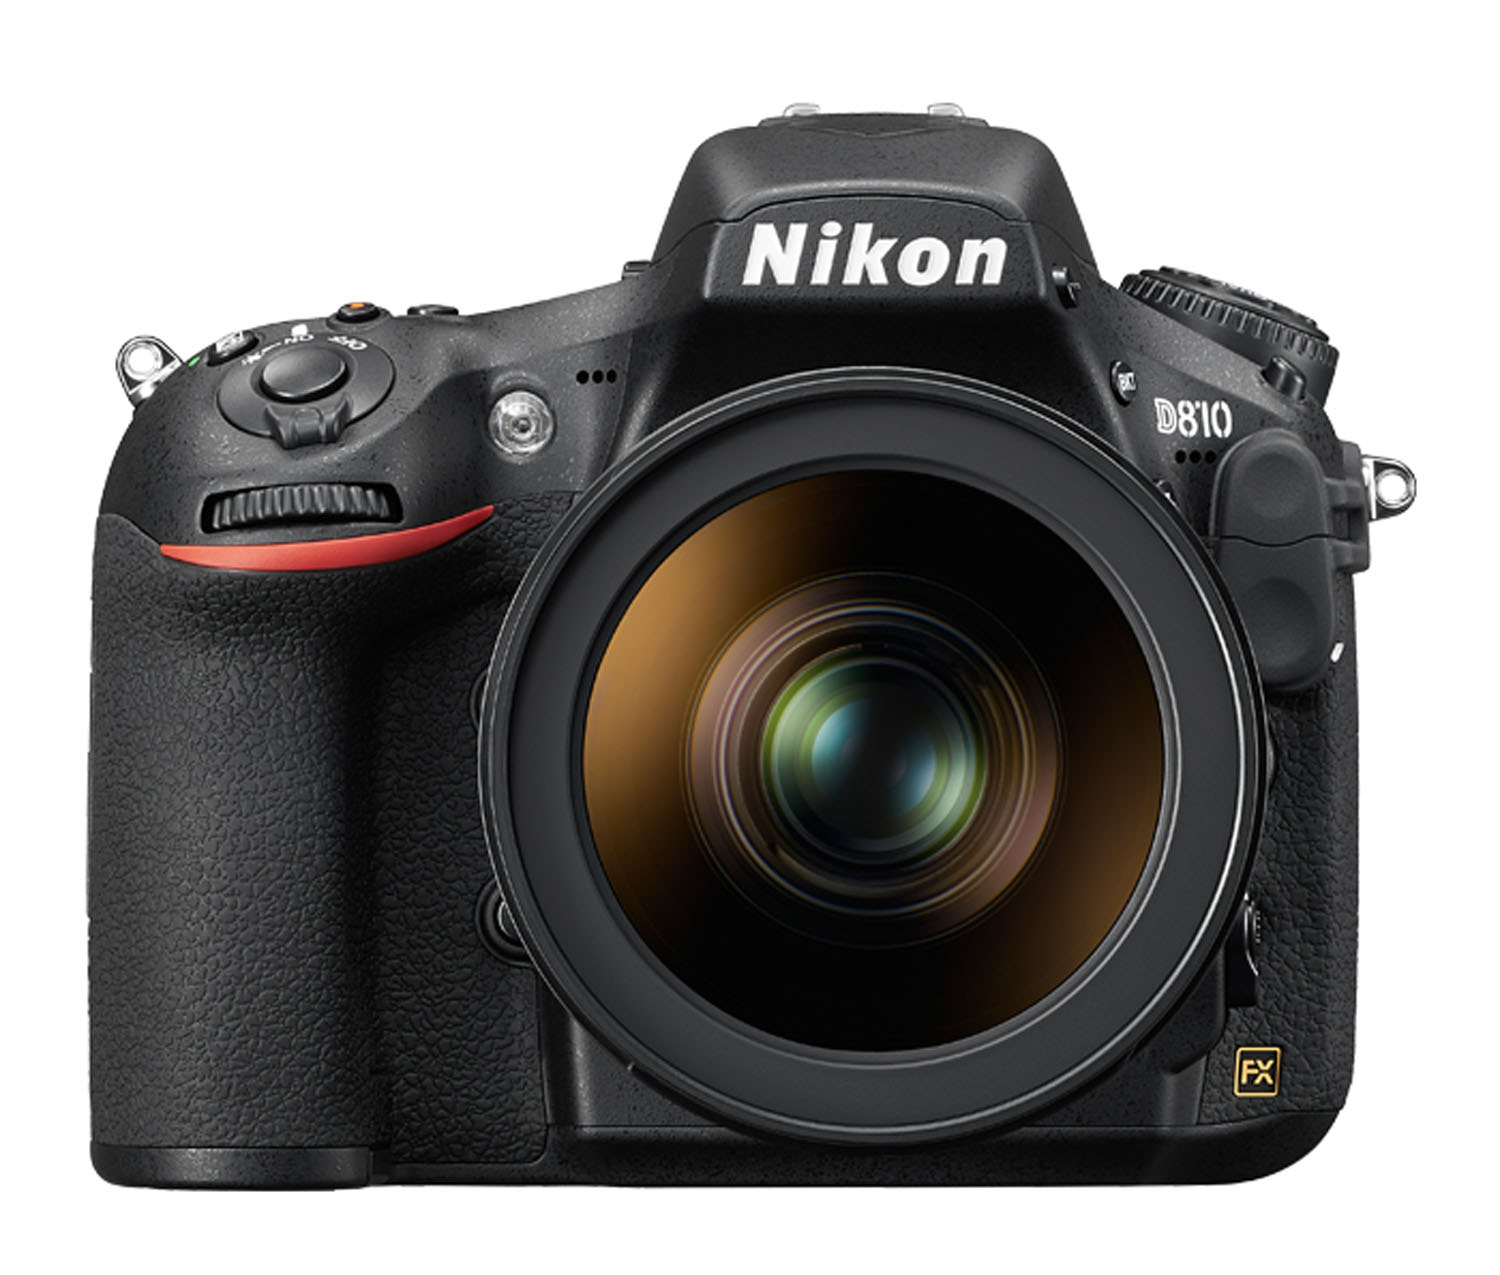 Image of a Nikon D8100 (from NikonUSA website)